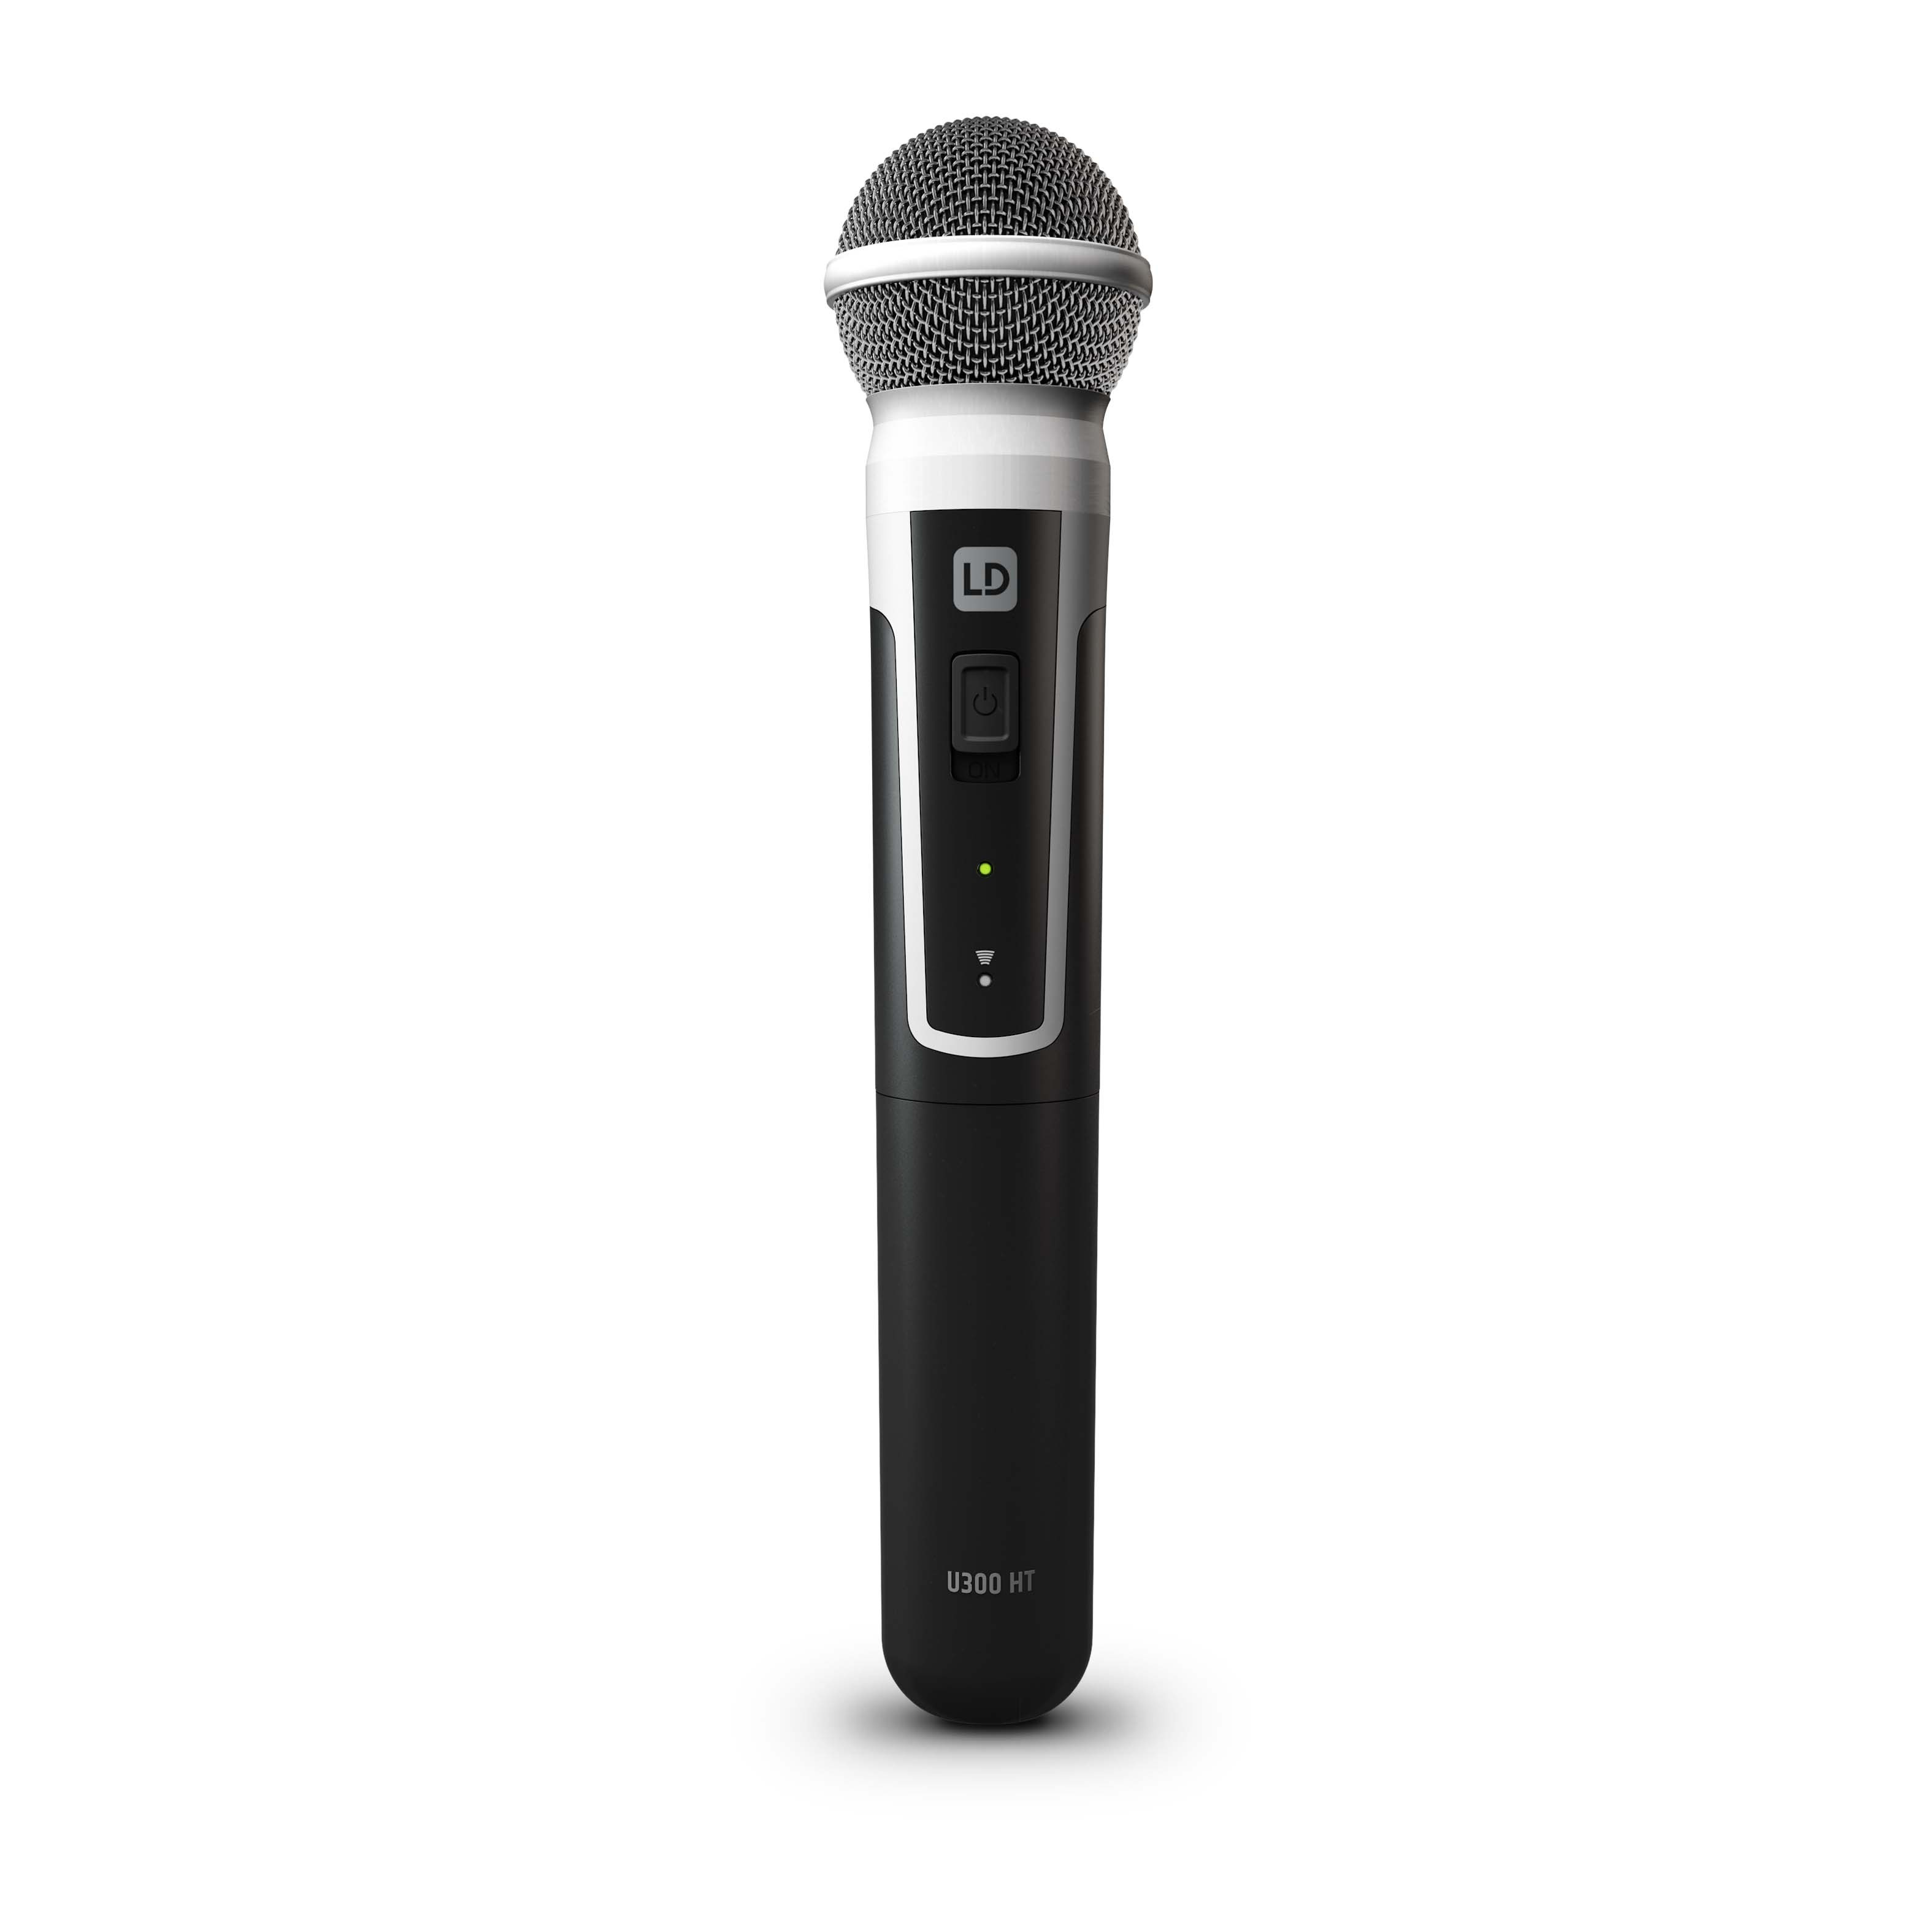 U304.7 HHD Wireless Microphone System with Dynamic Handheld Microphone